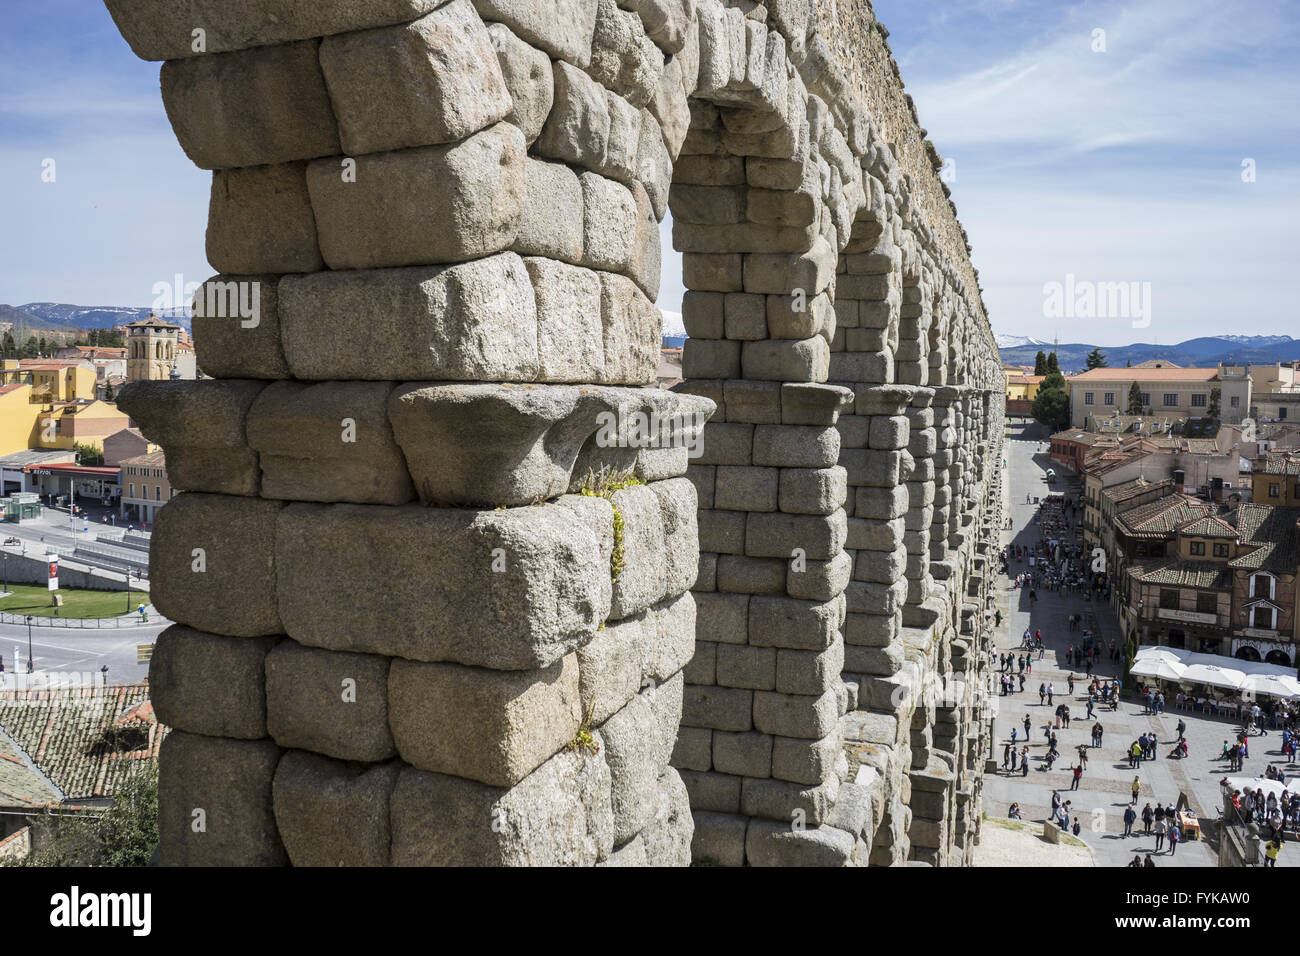 Tourism, Roman aqueduct of segovia. architectural monument declared patrimony of humanity and international interest - Stock Image